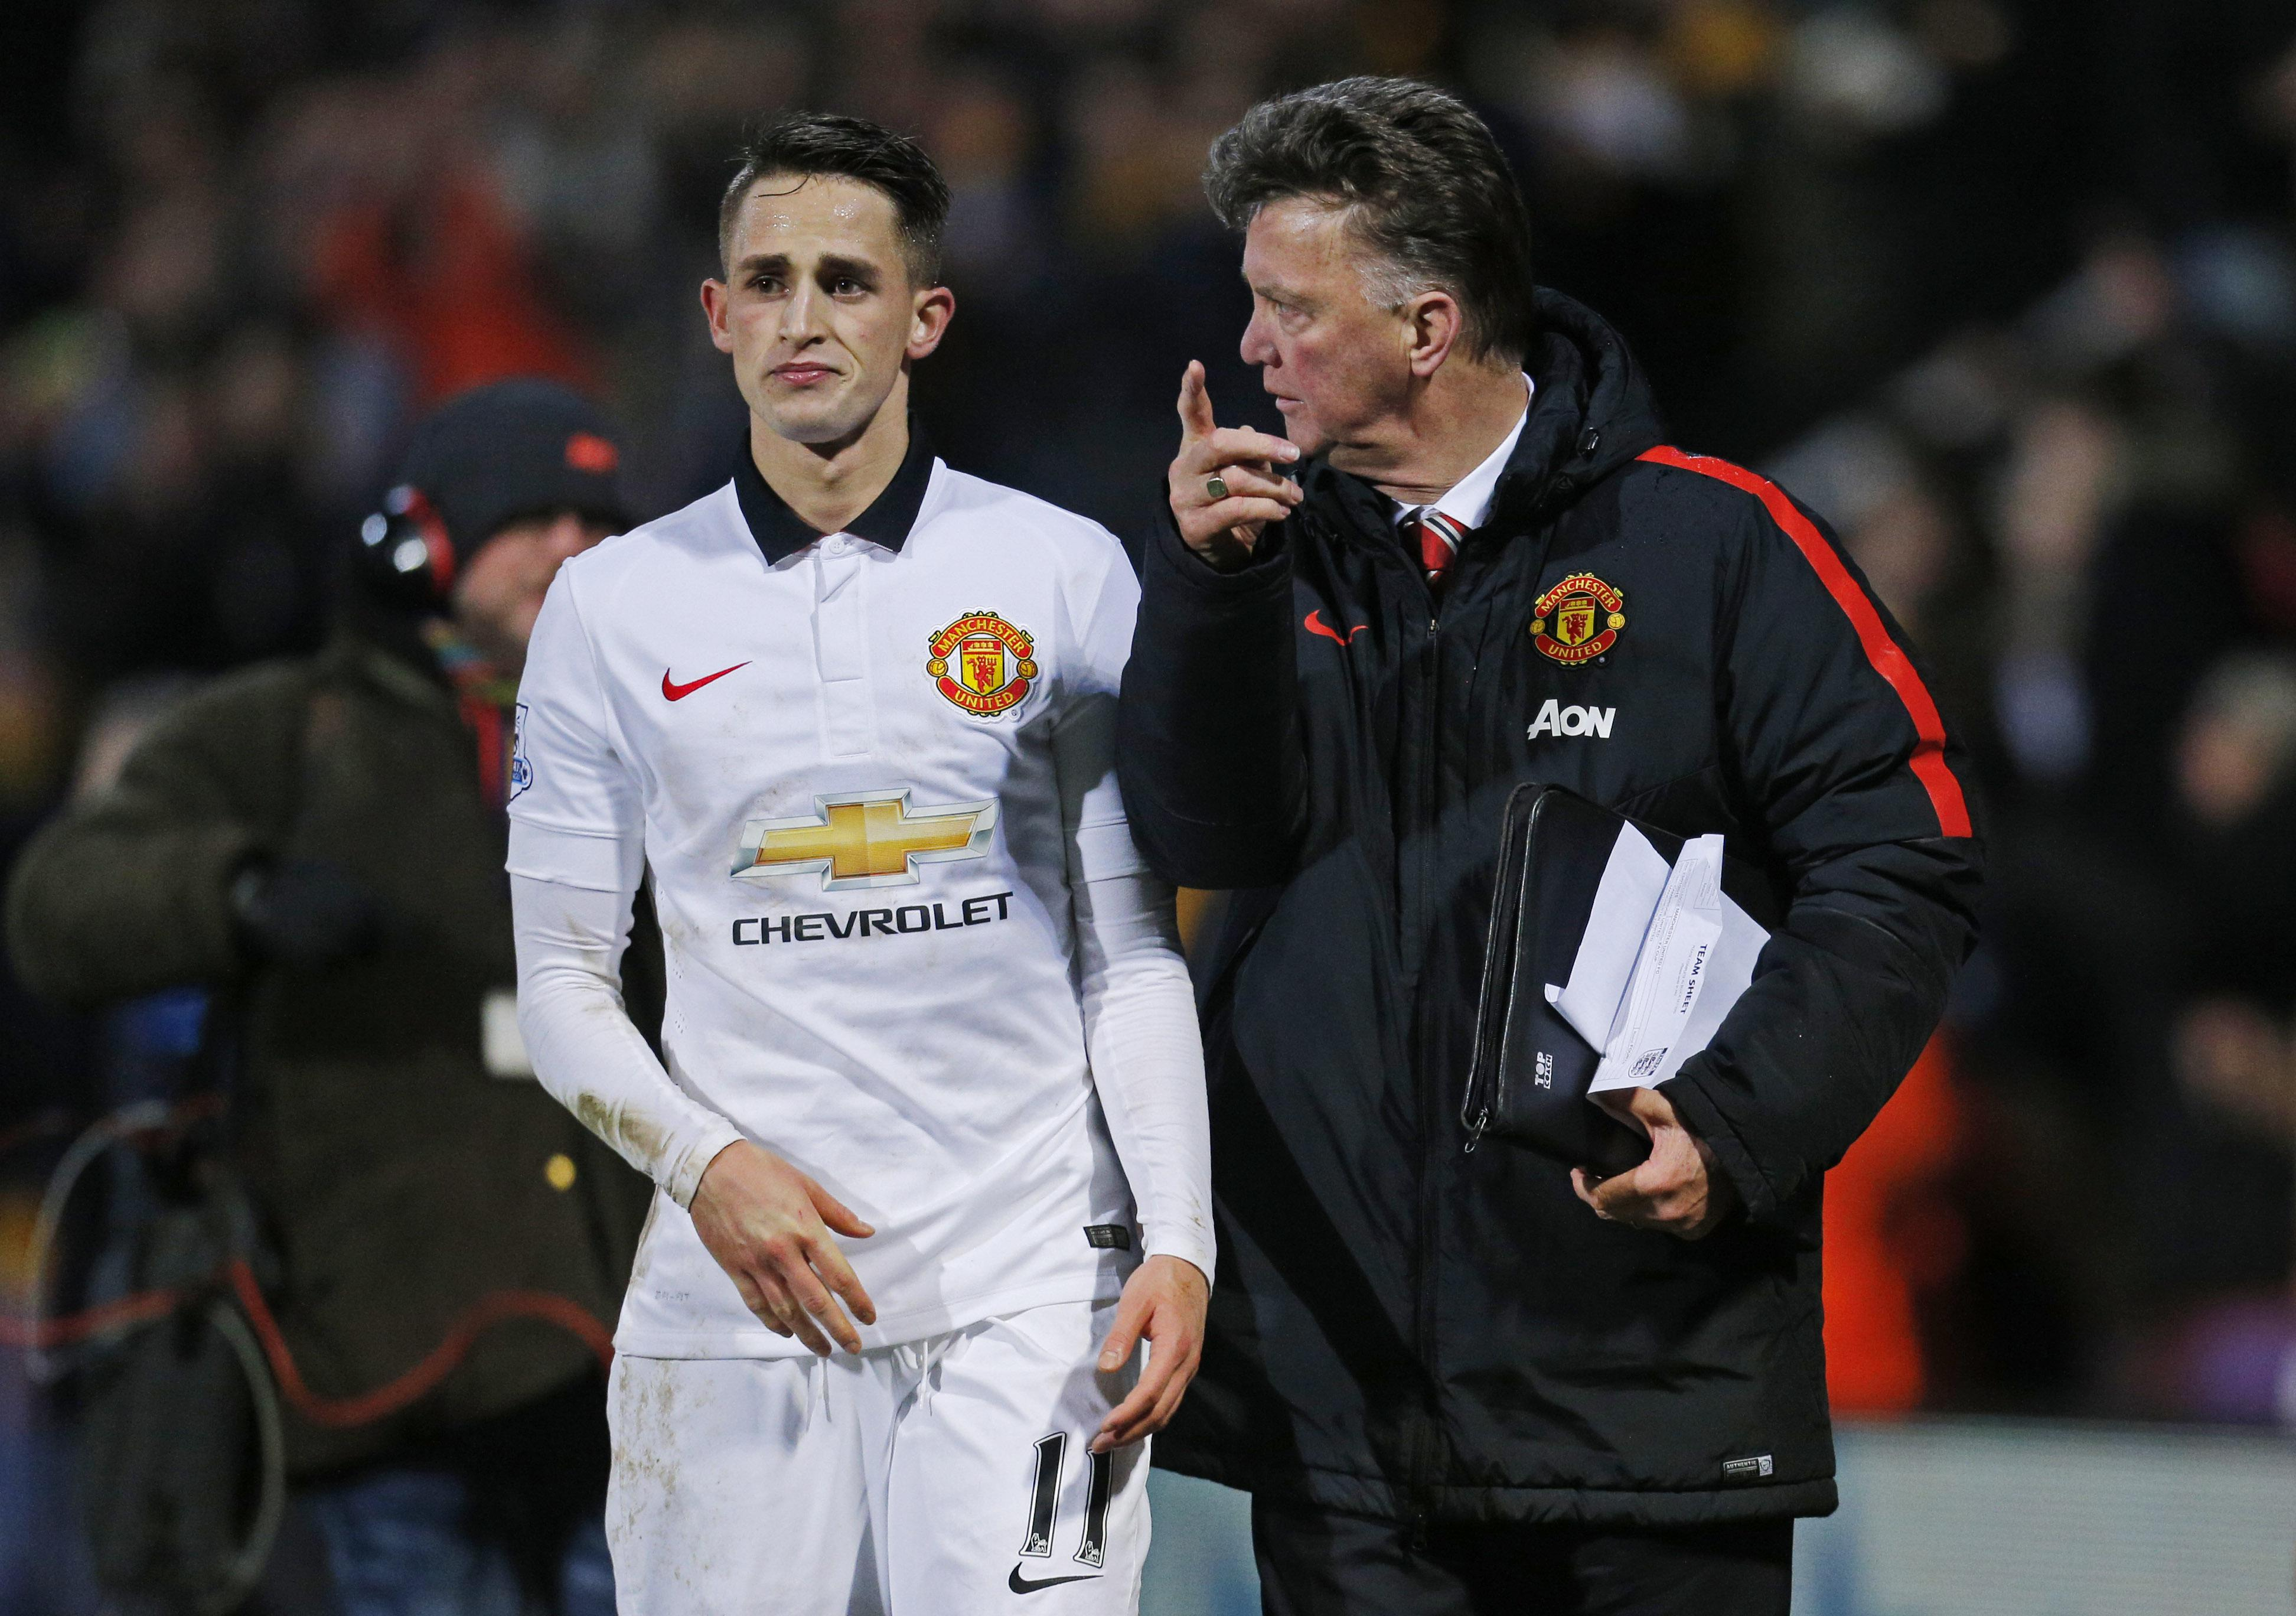 Louis Van Gaal often criticised the youngsters attitude and work rate